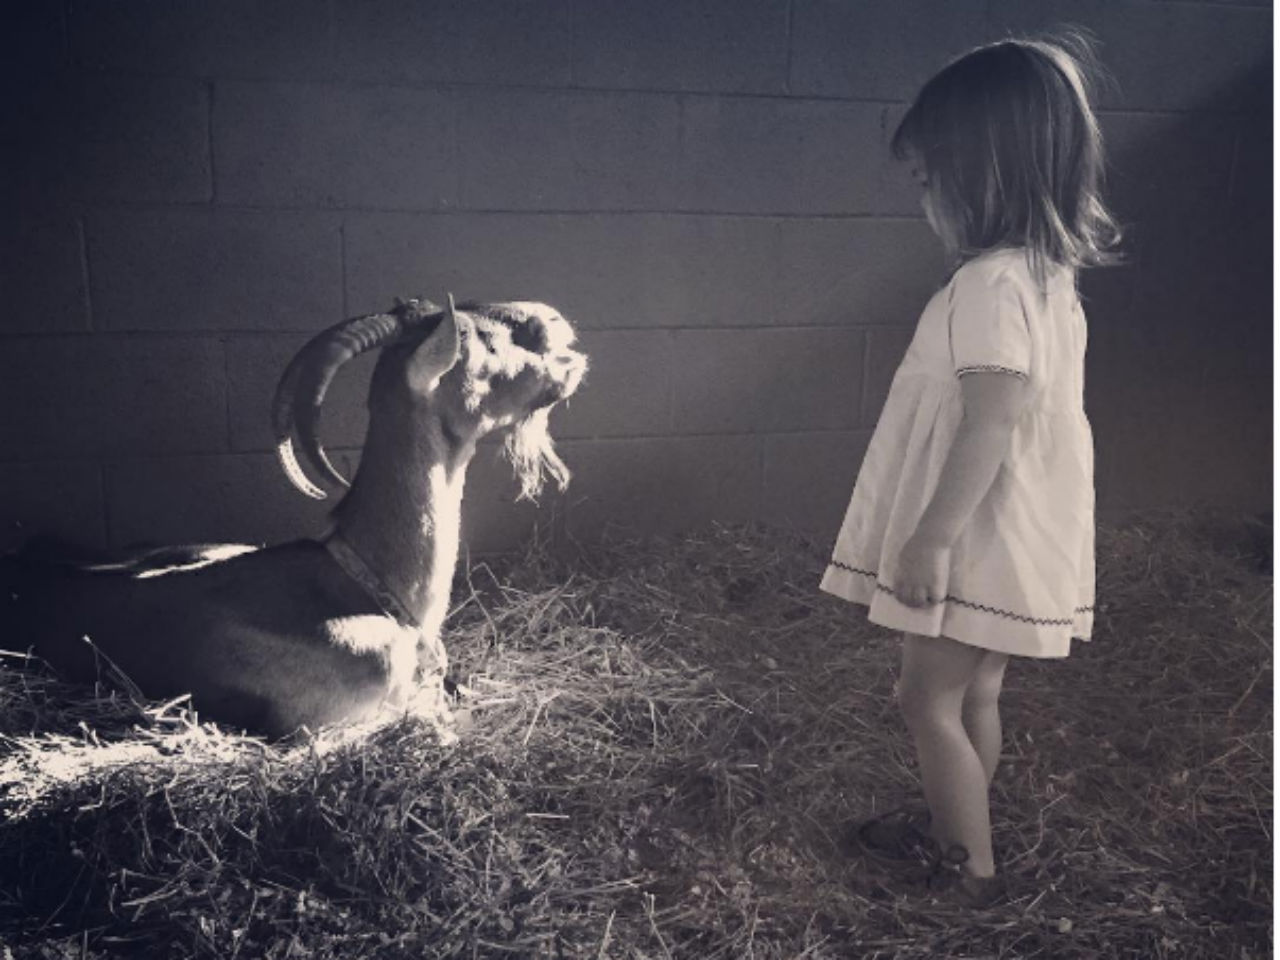 channing tatum's daughter with a goat in a barn